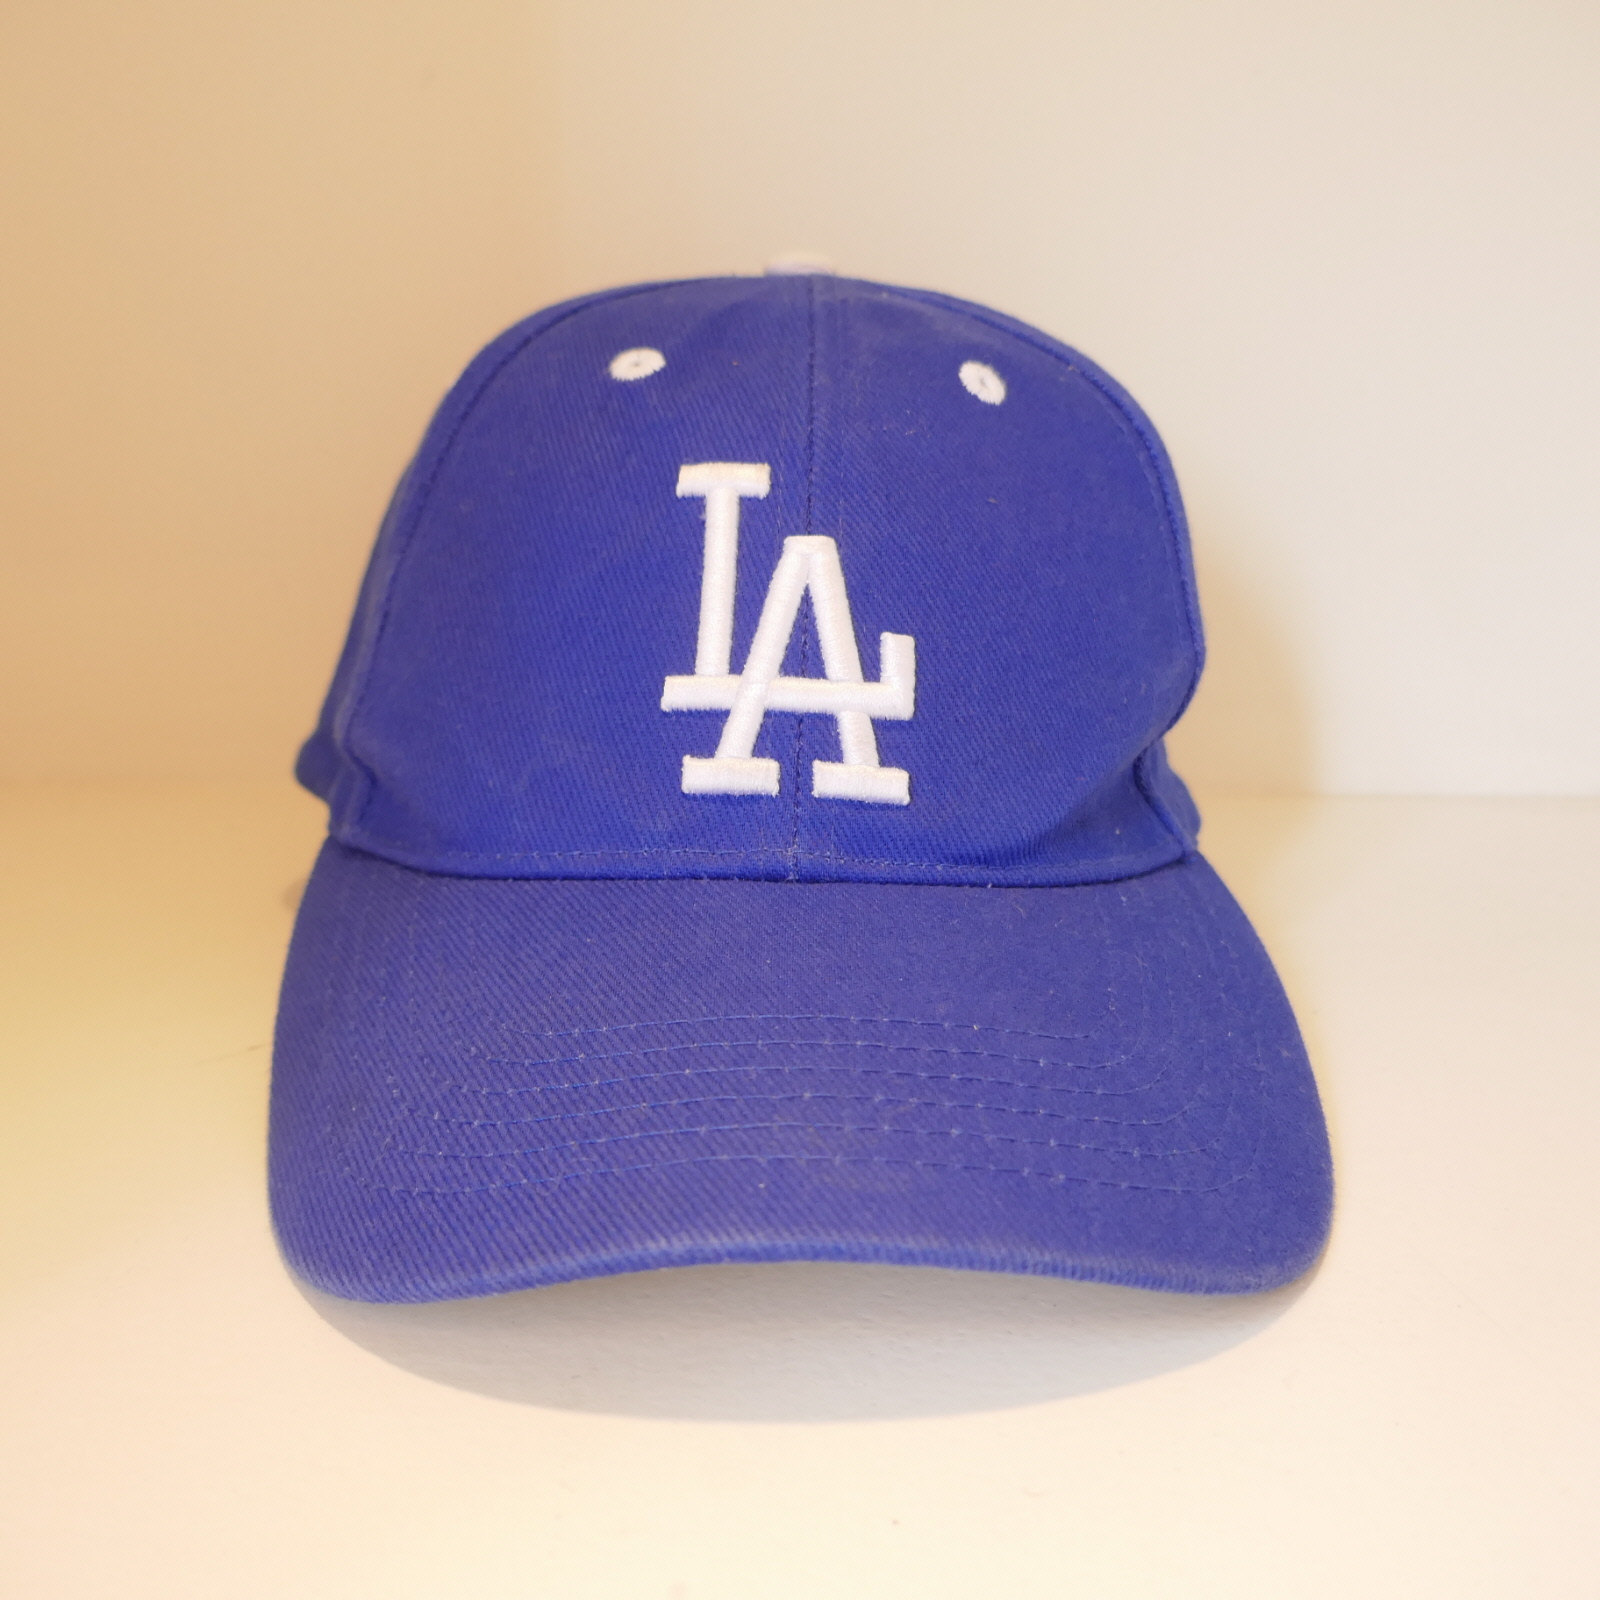 USED LA DODGERS CAP BLUE